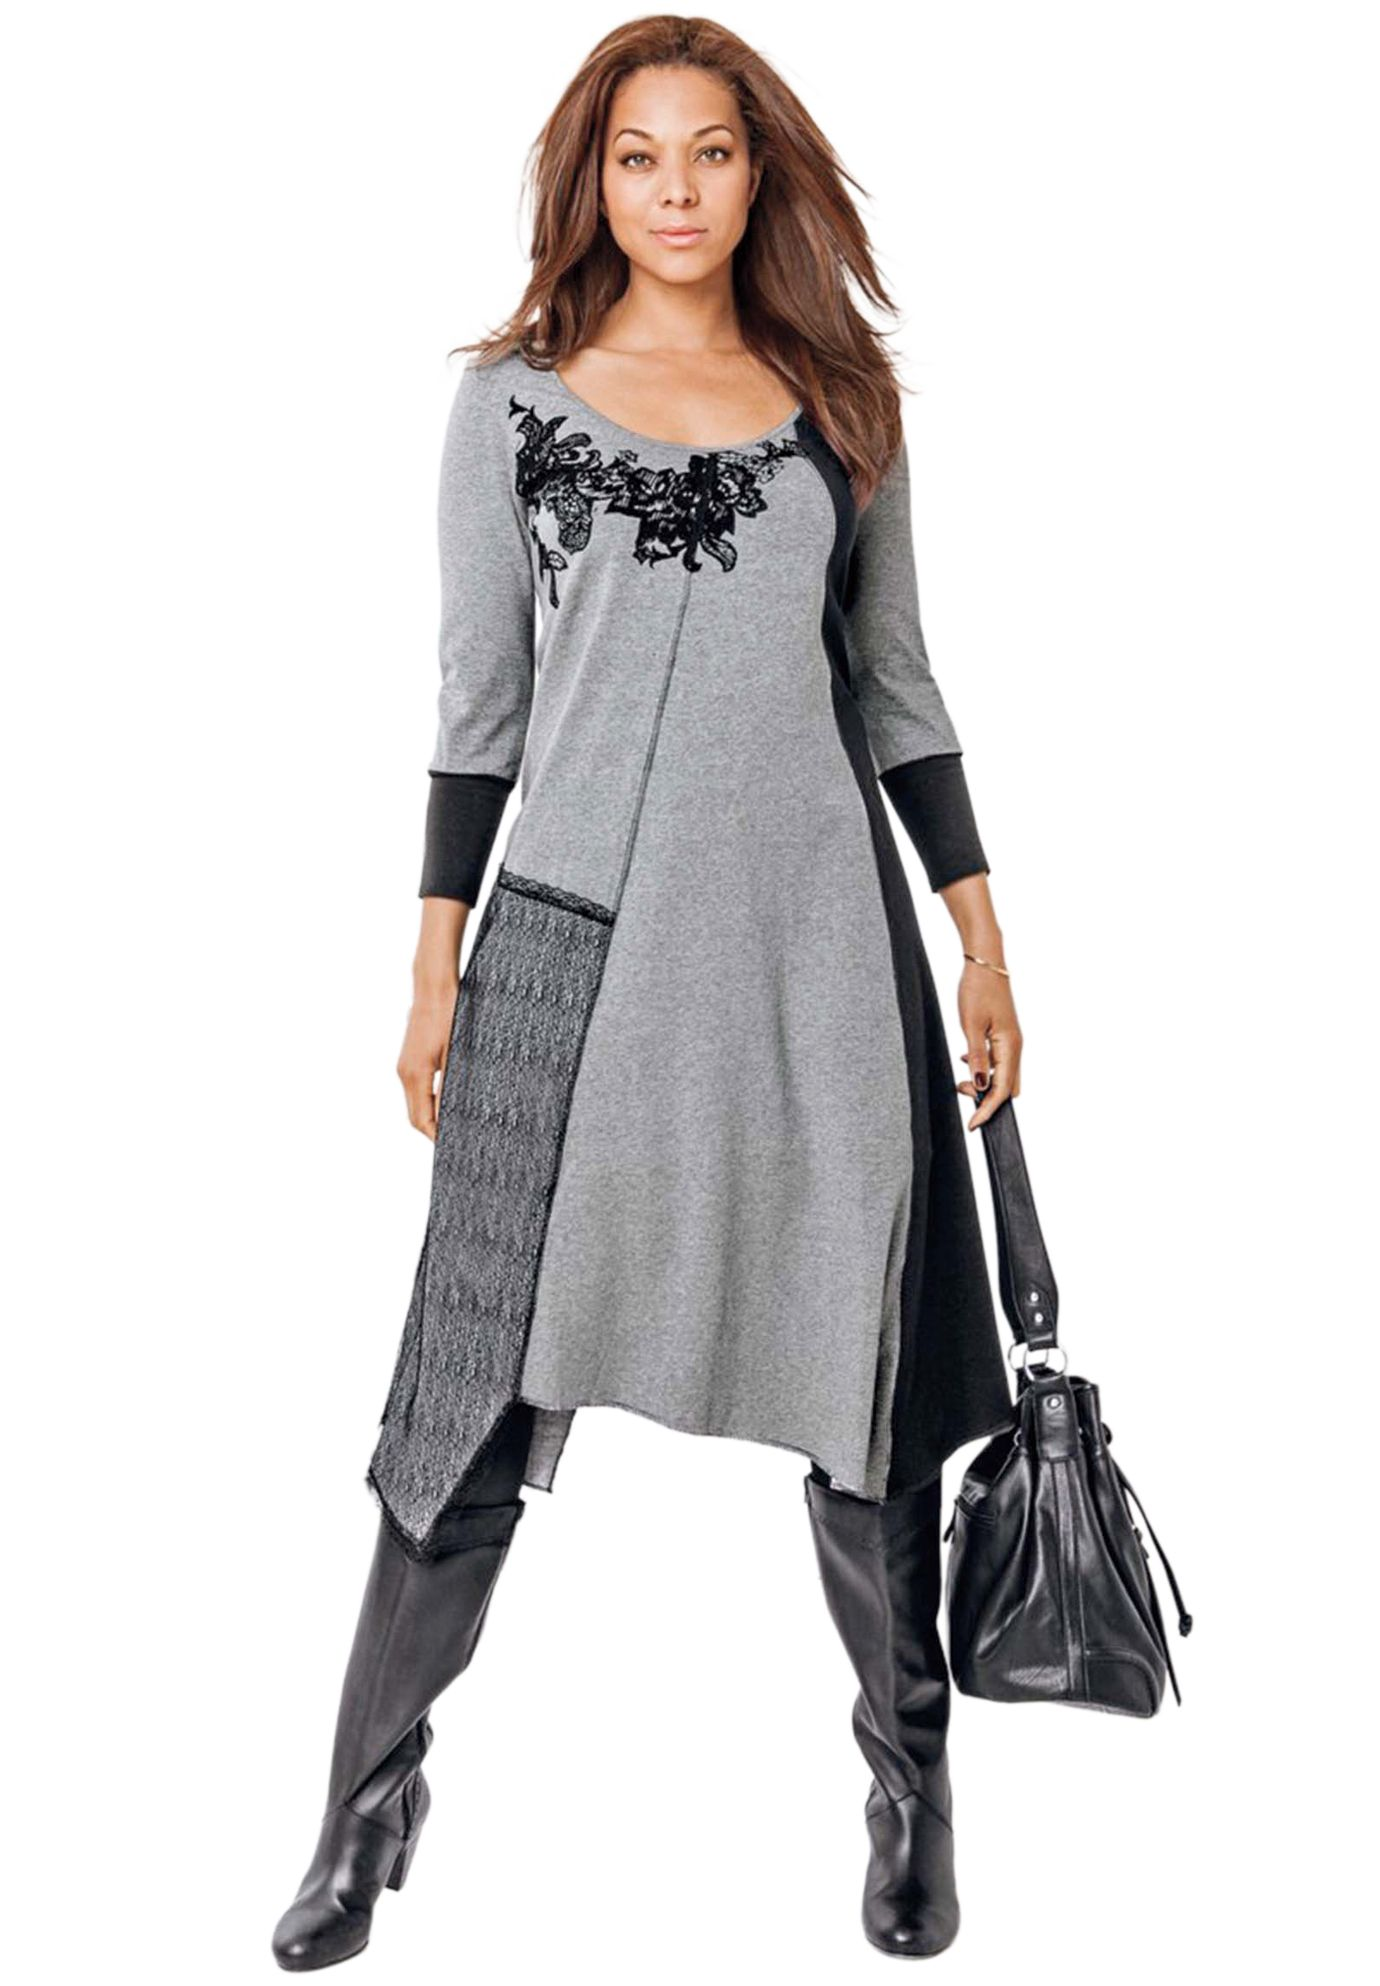 Roamans Taillissime Plus Size Grey Asymmetric Hem Dress